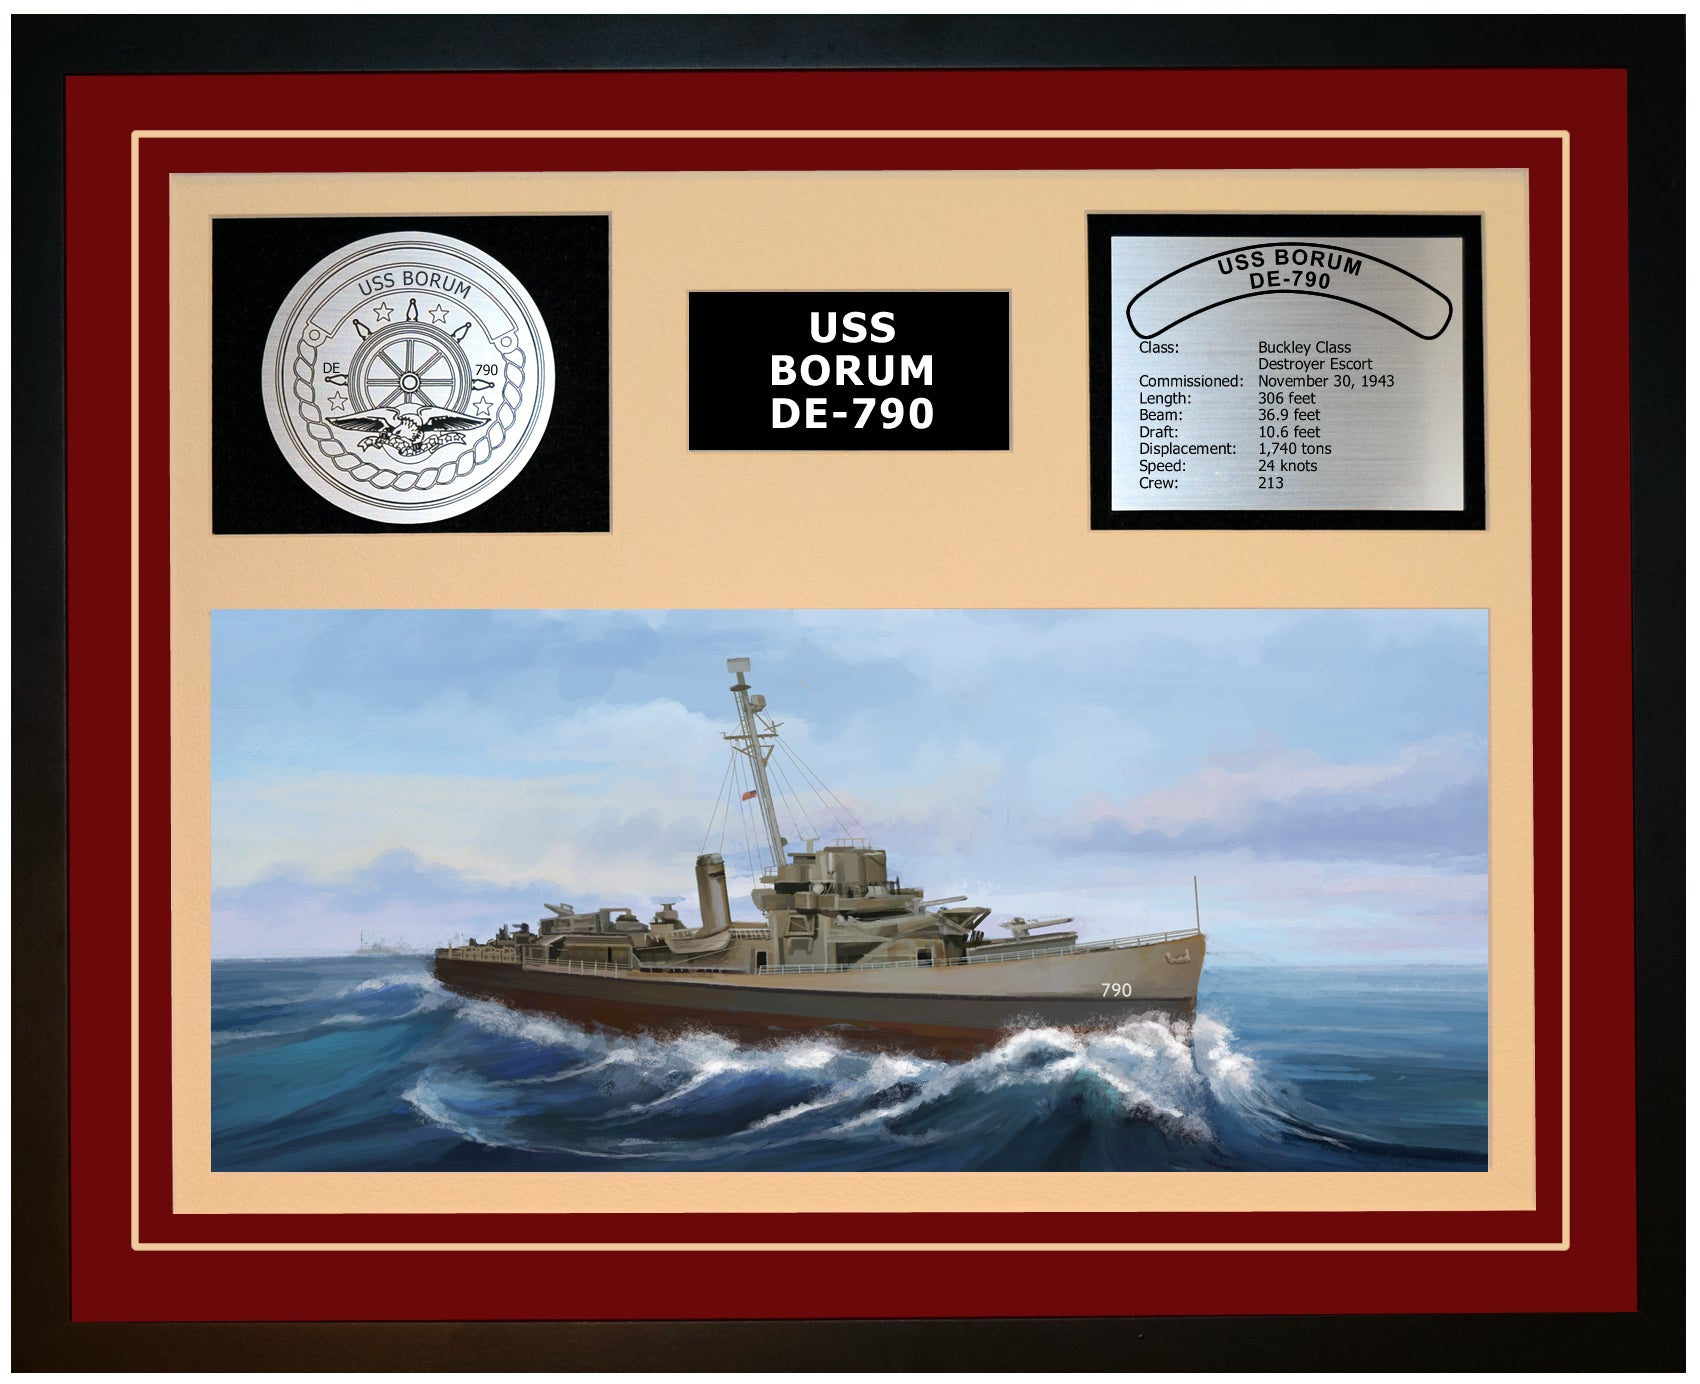 USS BORUM DE-790 Framed Navy Ship Display Burgundy